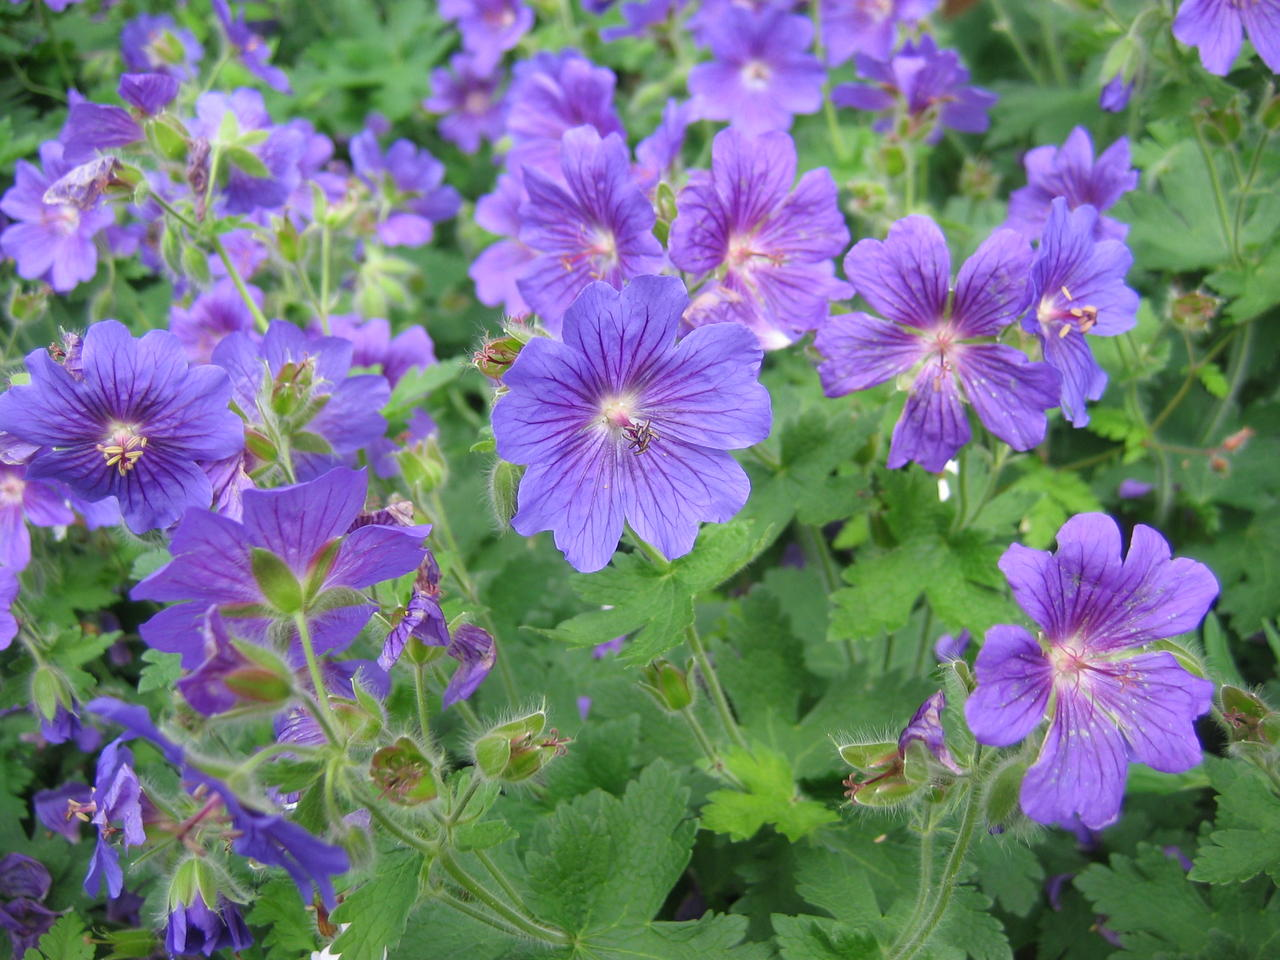 Ooievaarsbek / Geranium 'Johnson's Blue'